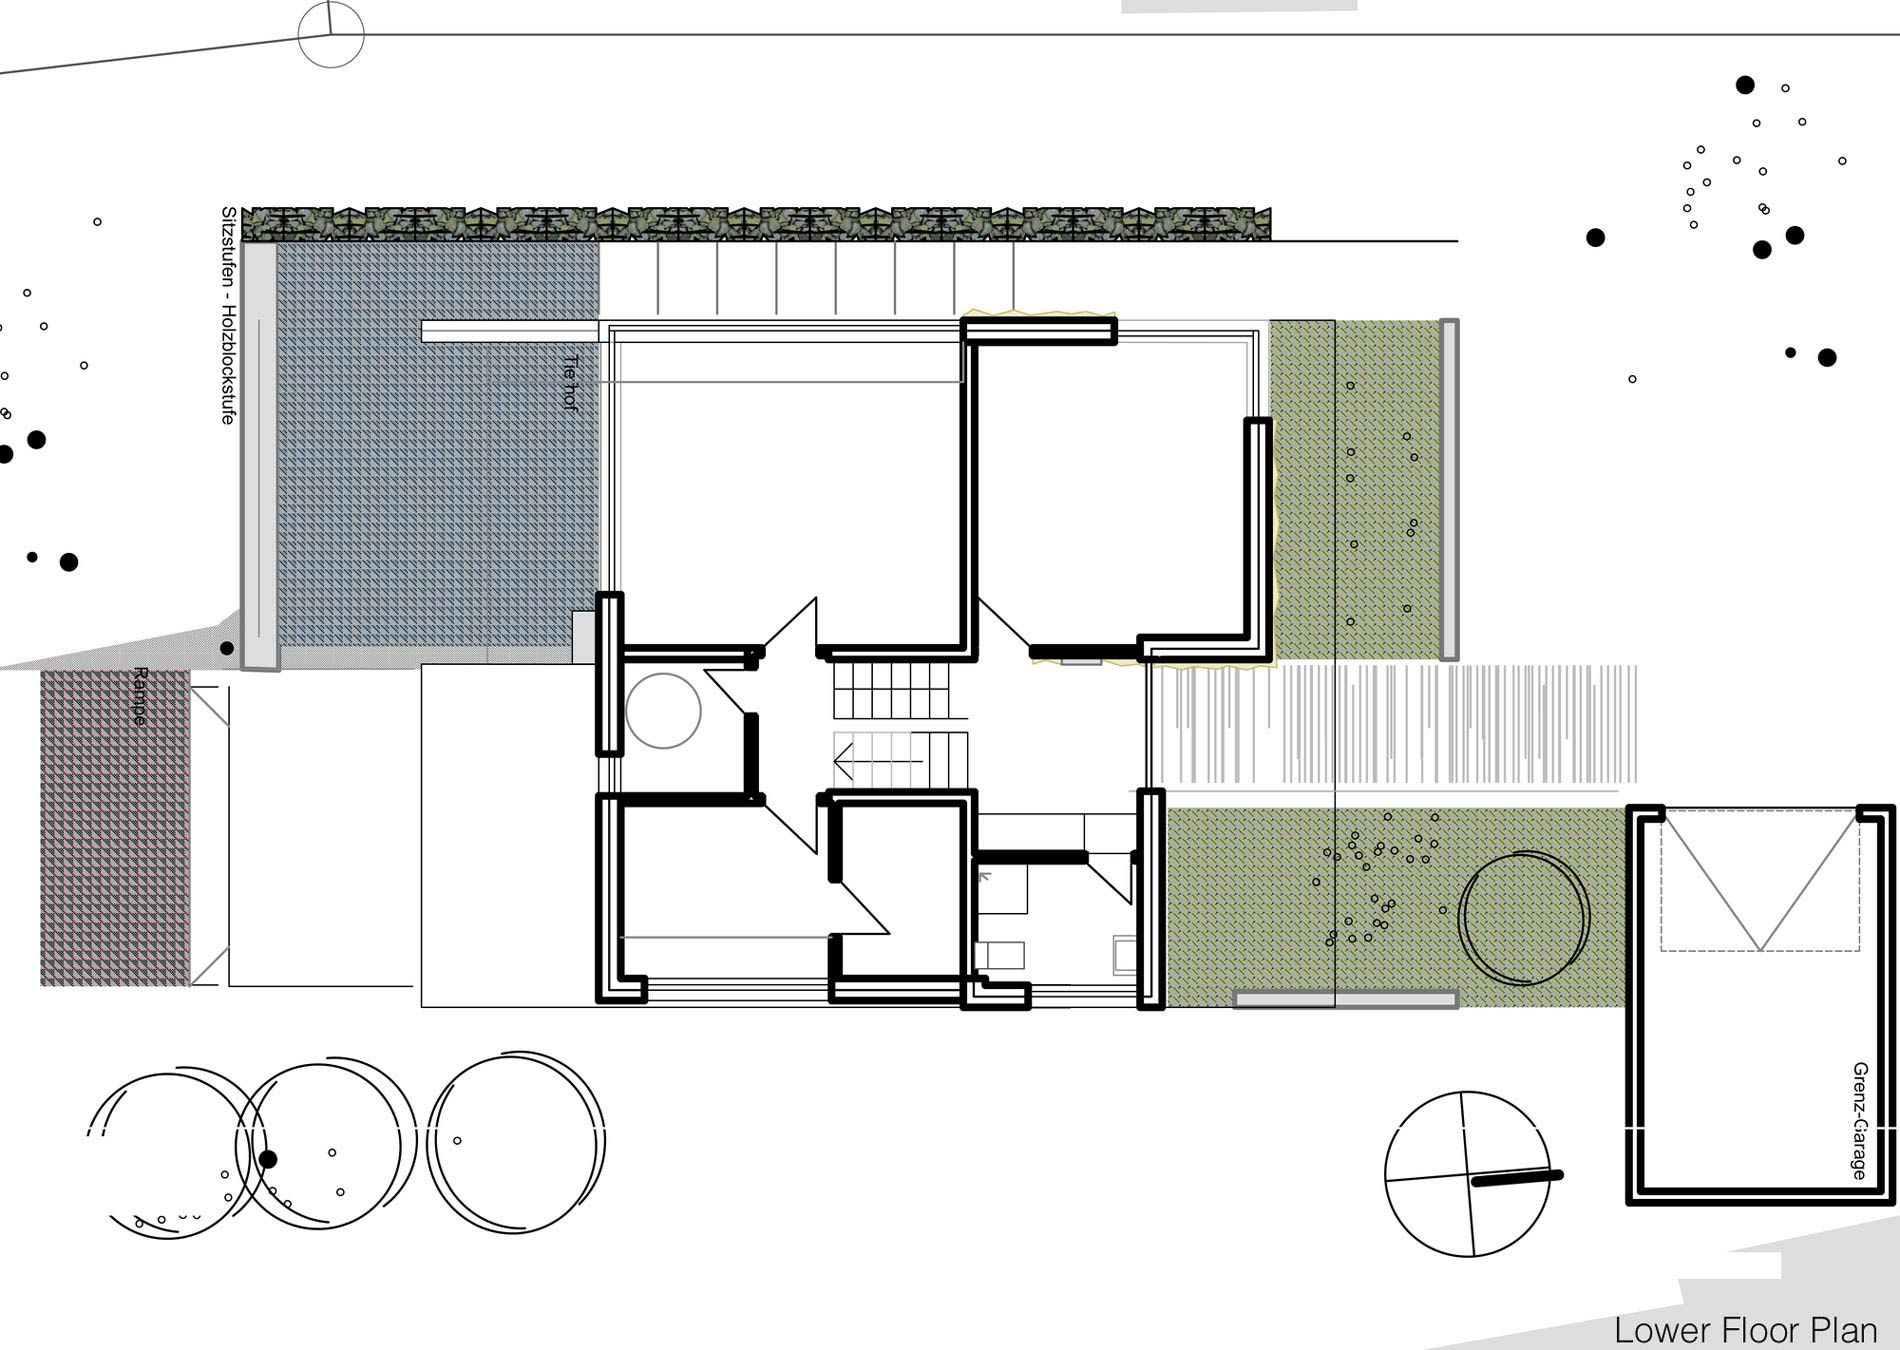 Lower Floor Plan, Home Split Level Home in Aalen, Germany